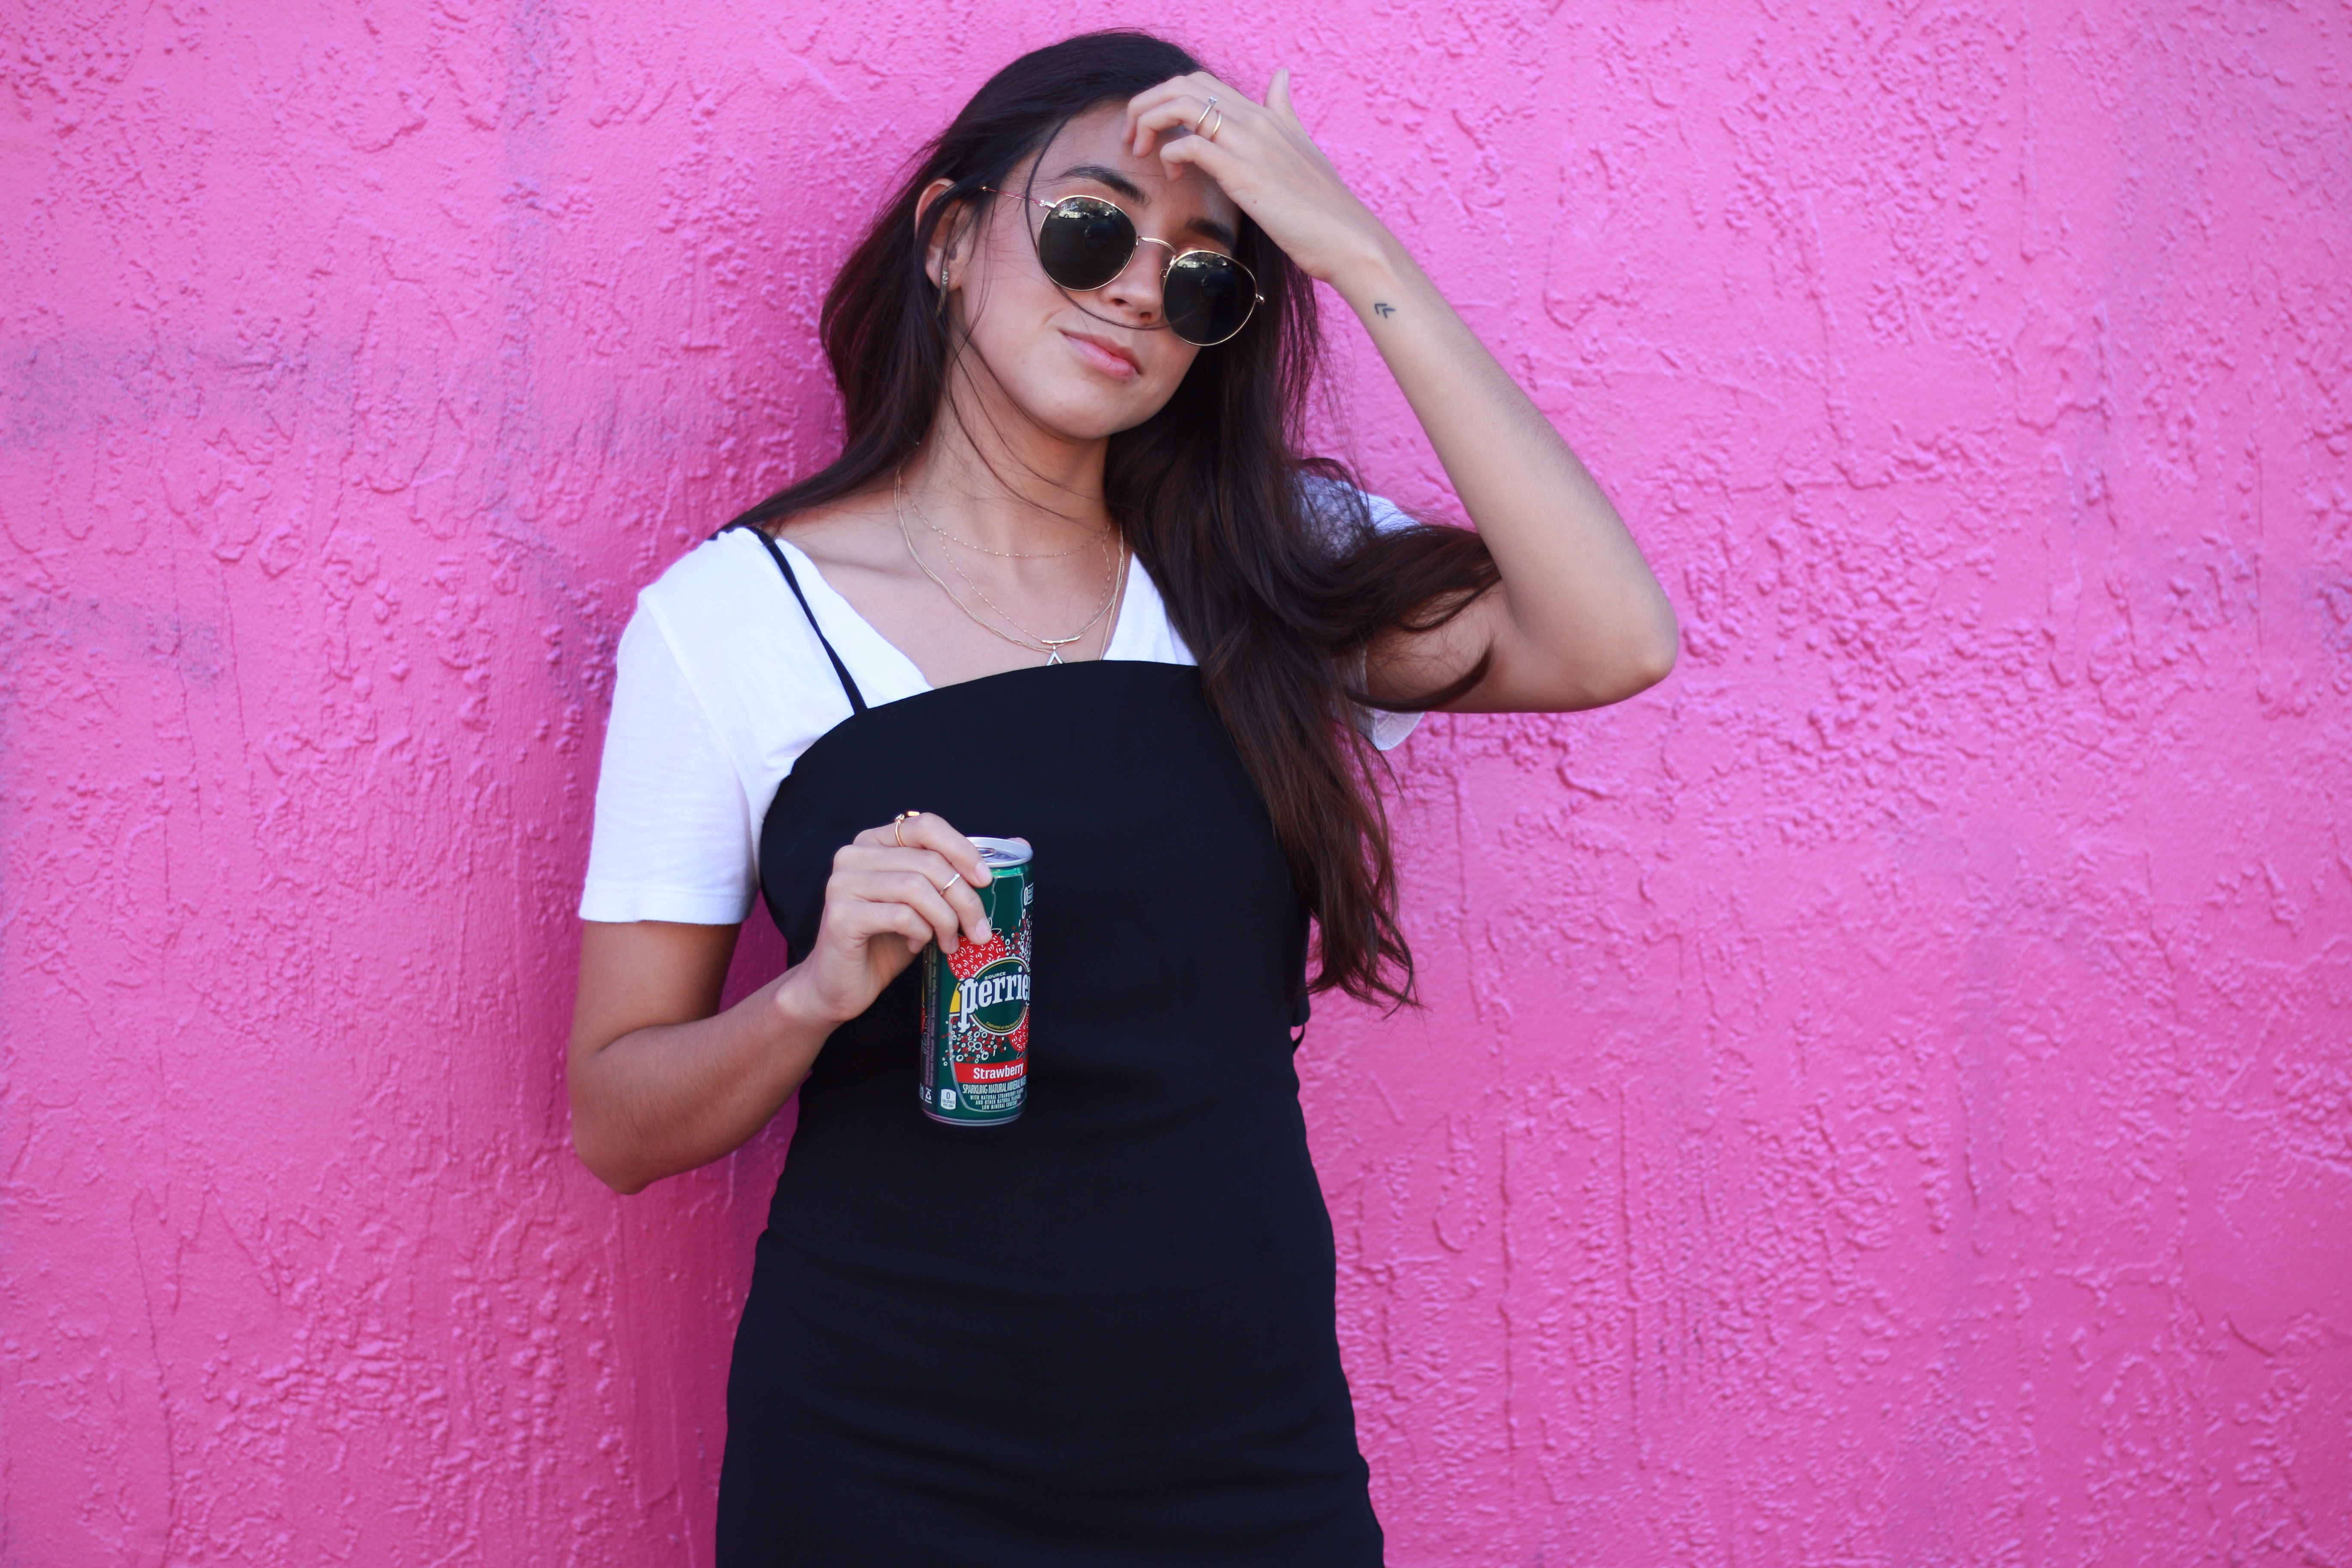 perrier-pink-wall-wynwood-vibrant